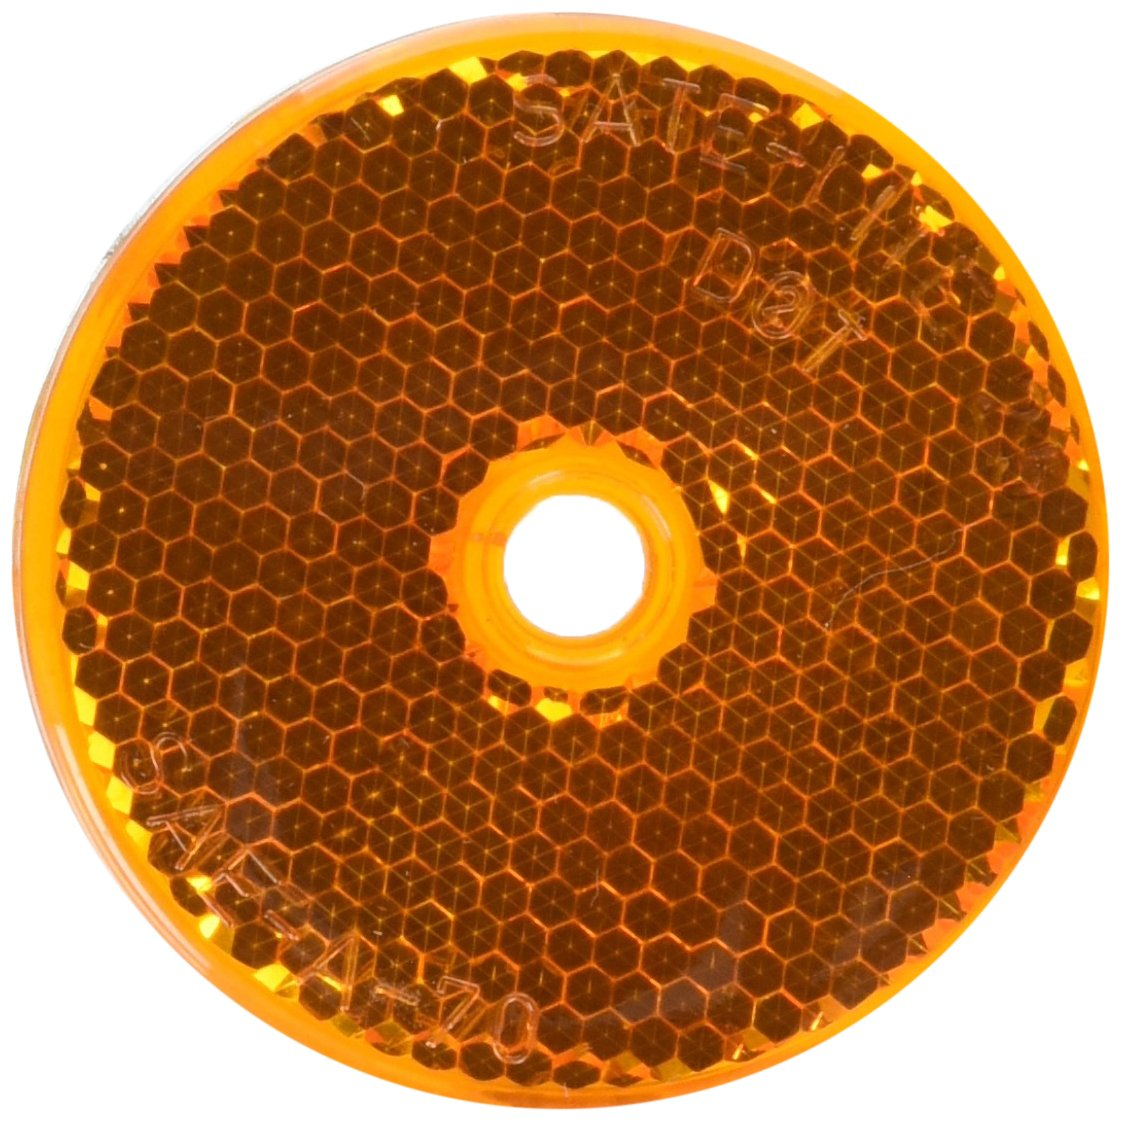 2-3//16 Round Bargman 70-71-175 Reflector with Center Mounting Hole Amber 2-3//16